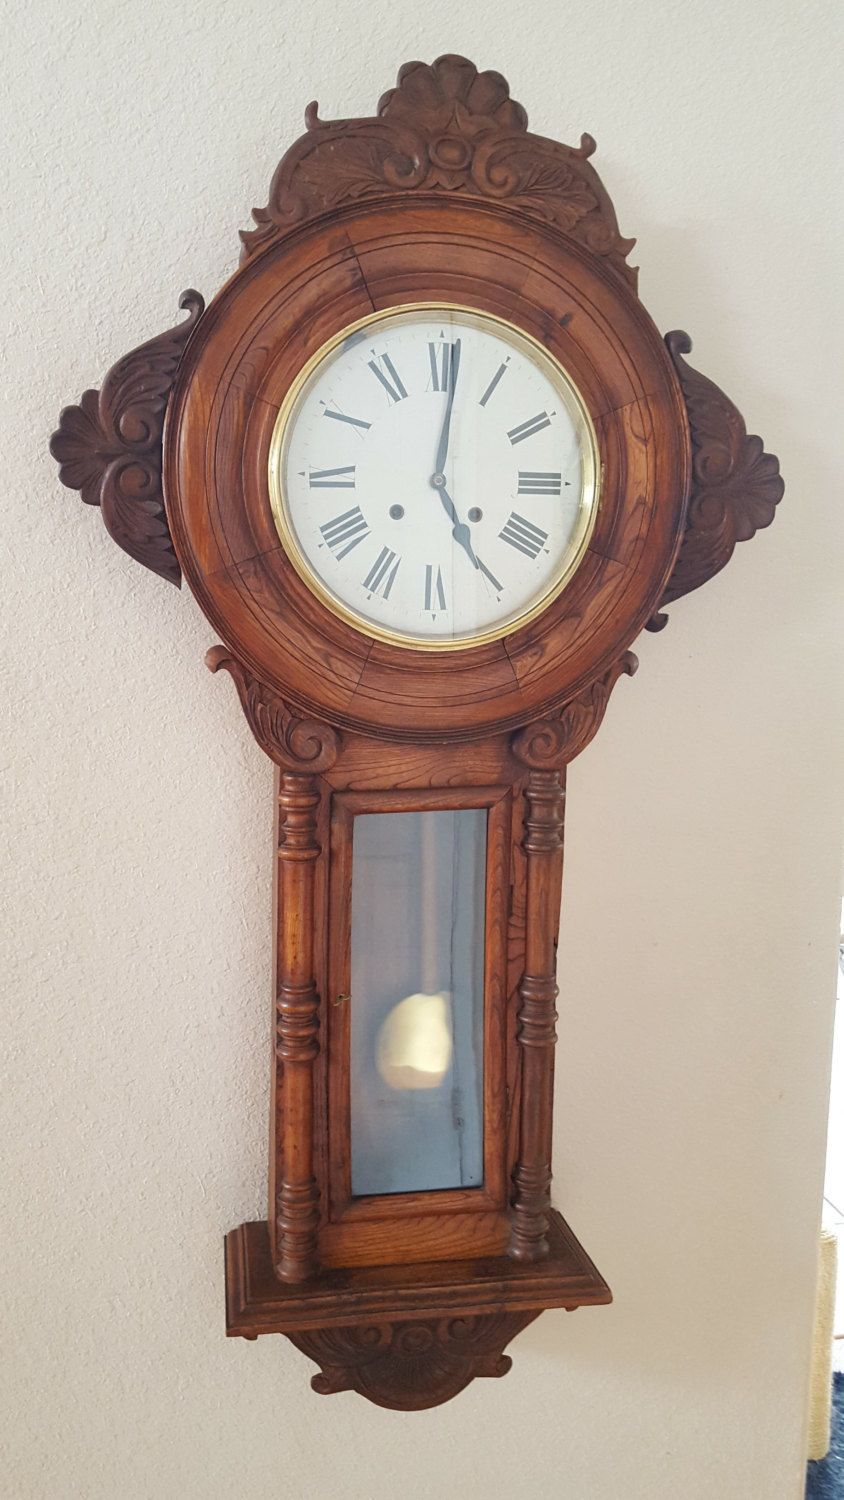 Restored Antique Bankers Regulator VERY LARGE Chiming Pendulum Wall